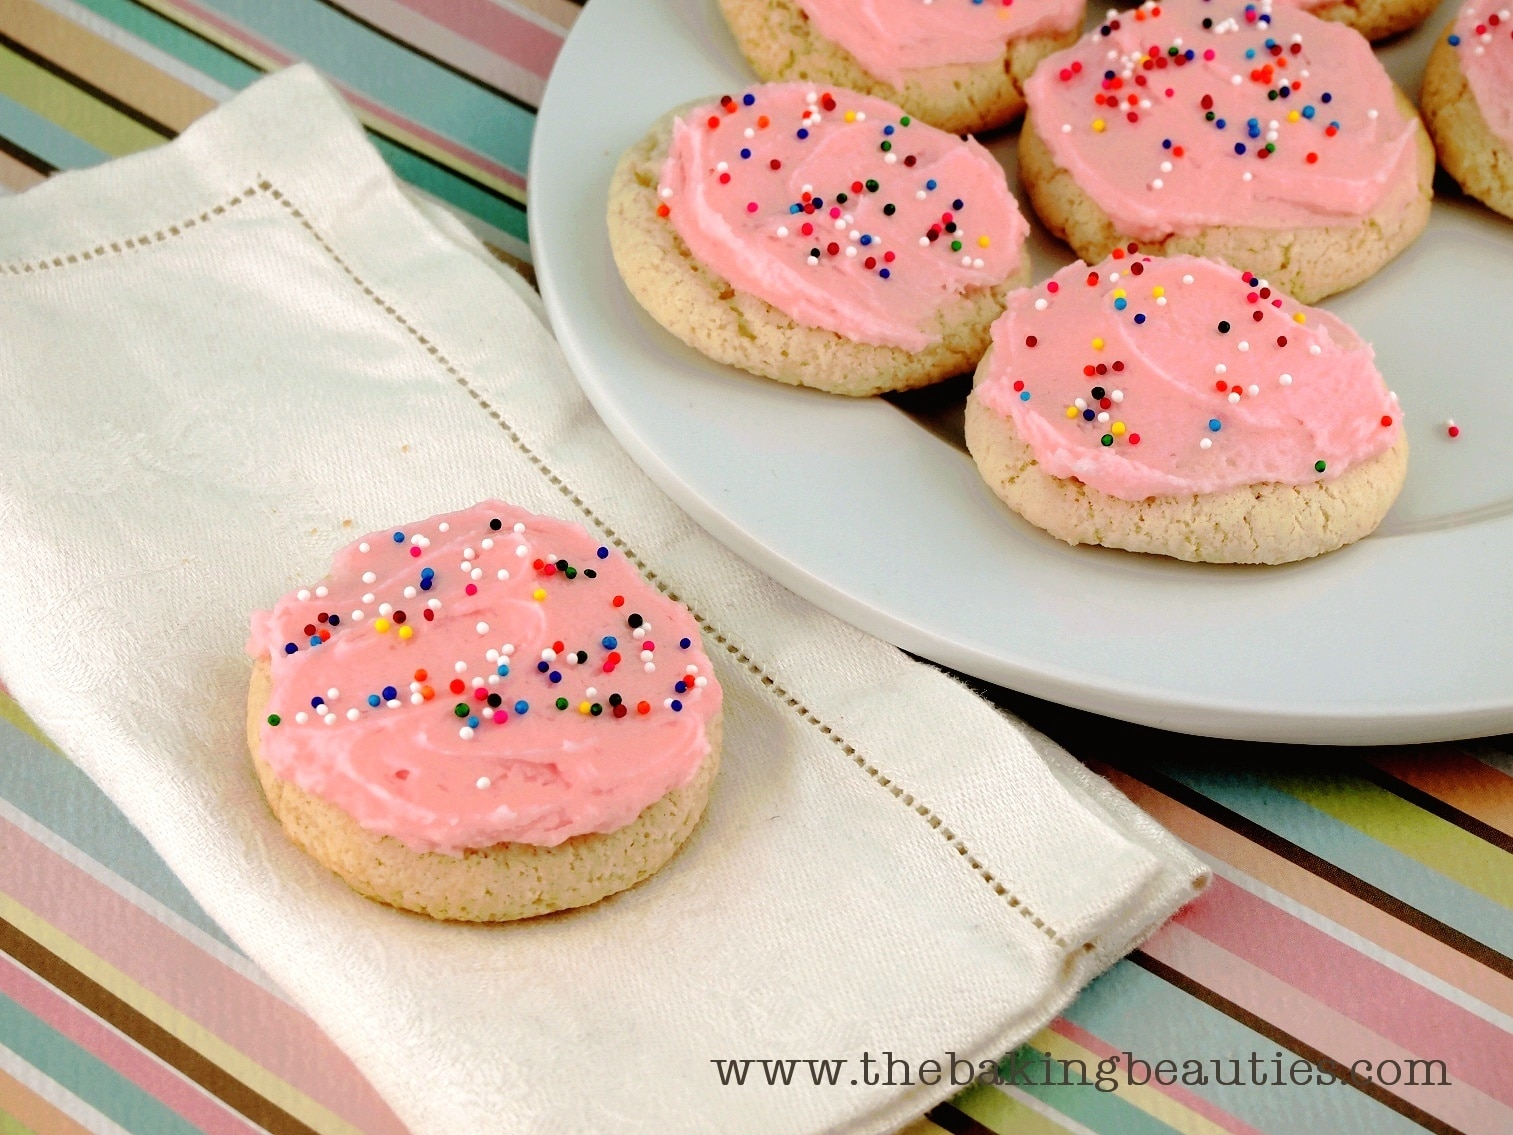 Gluten-free Sour Cream Sugar Cookies